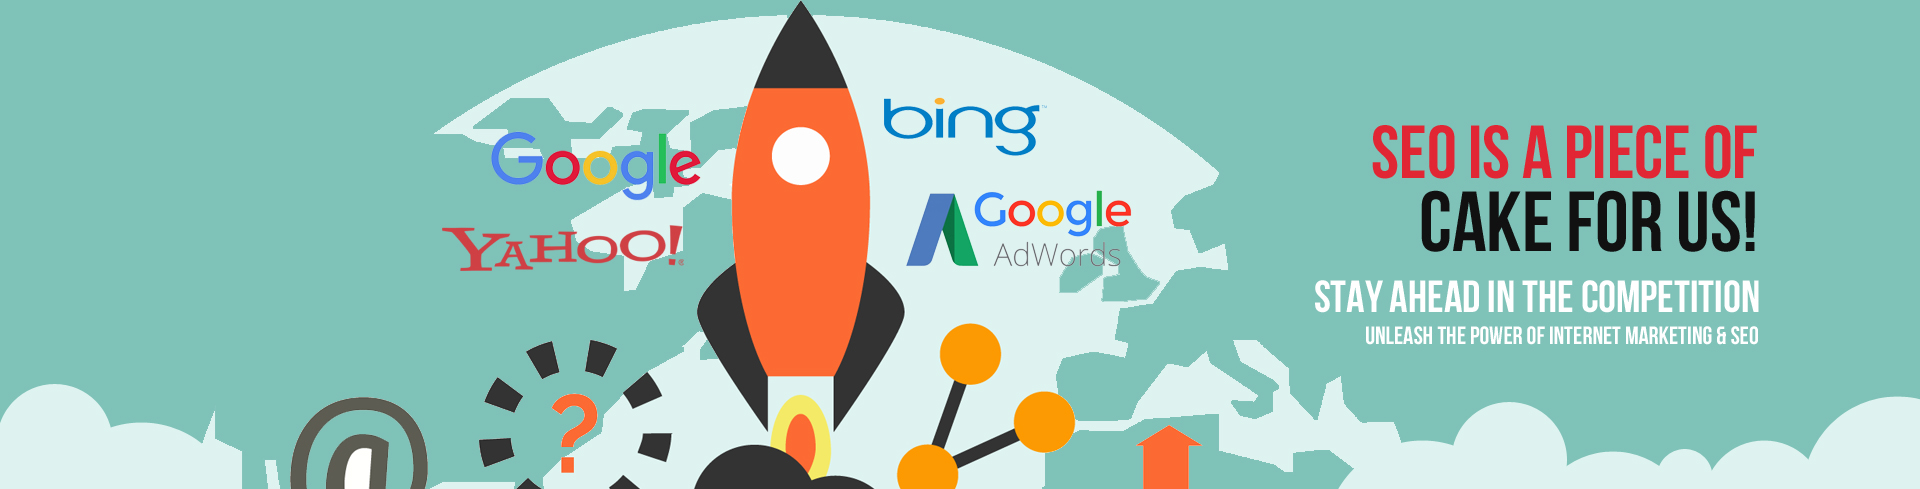 Searchmarketers_banner B